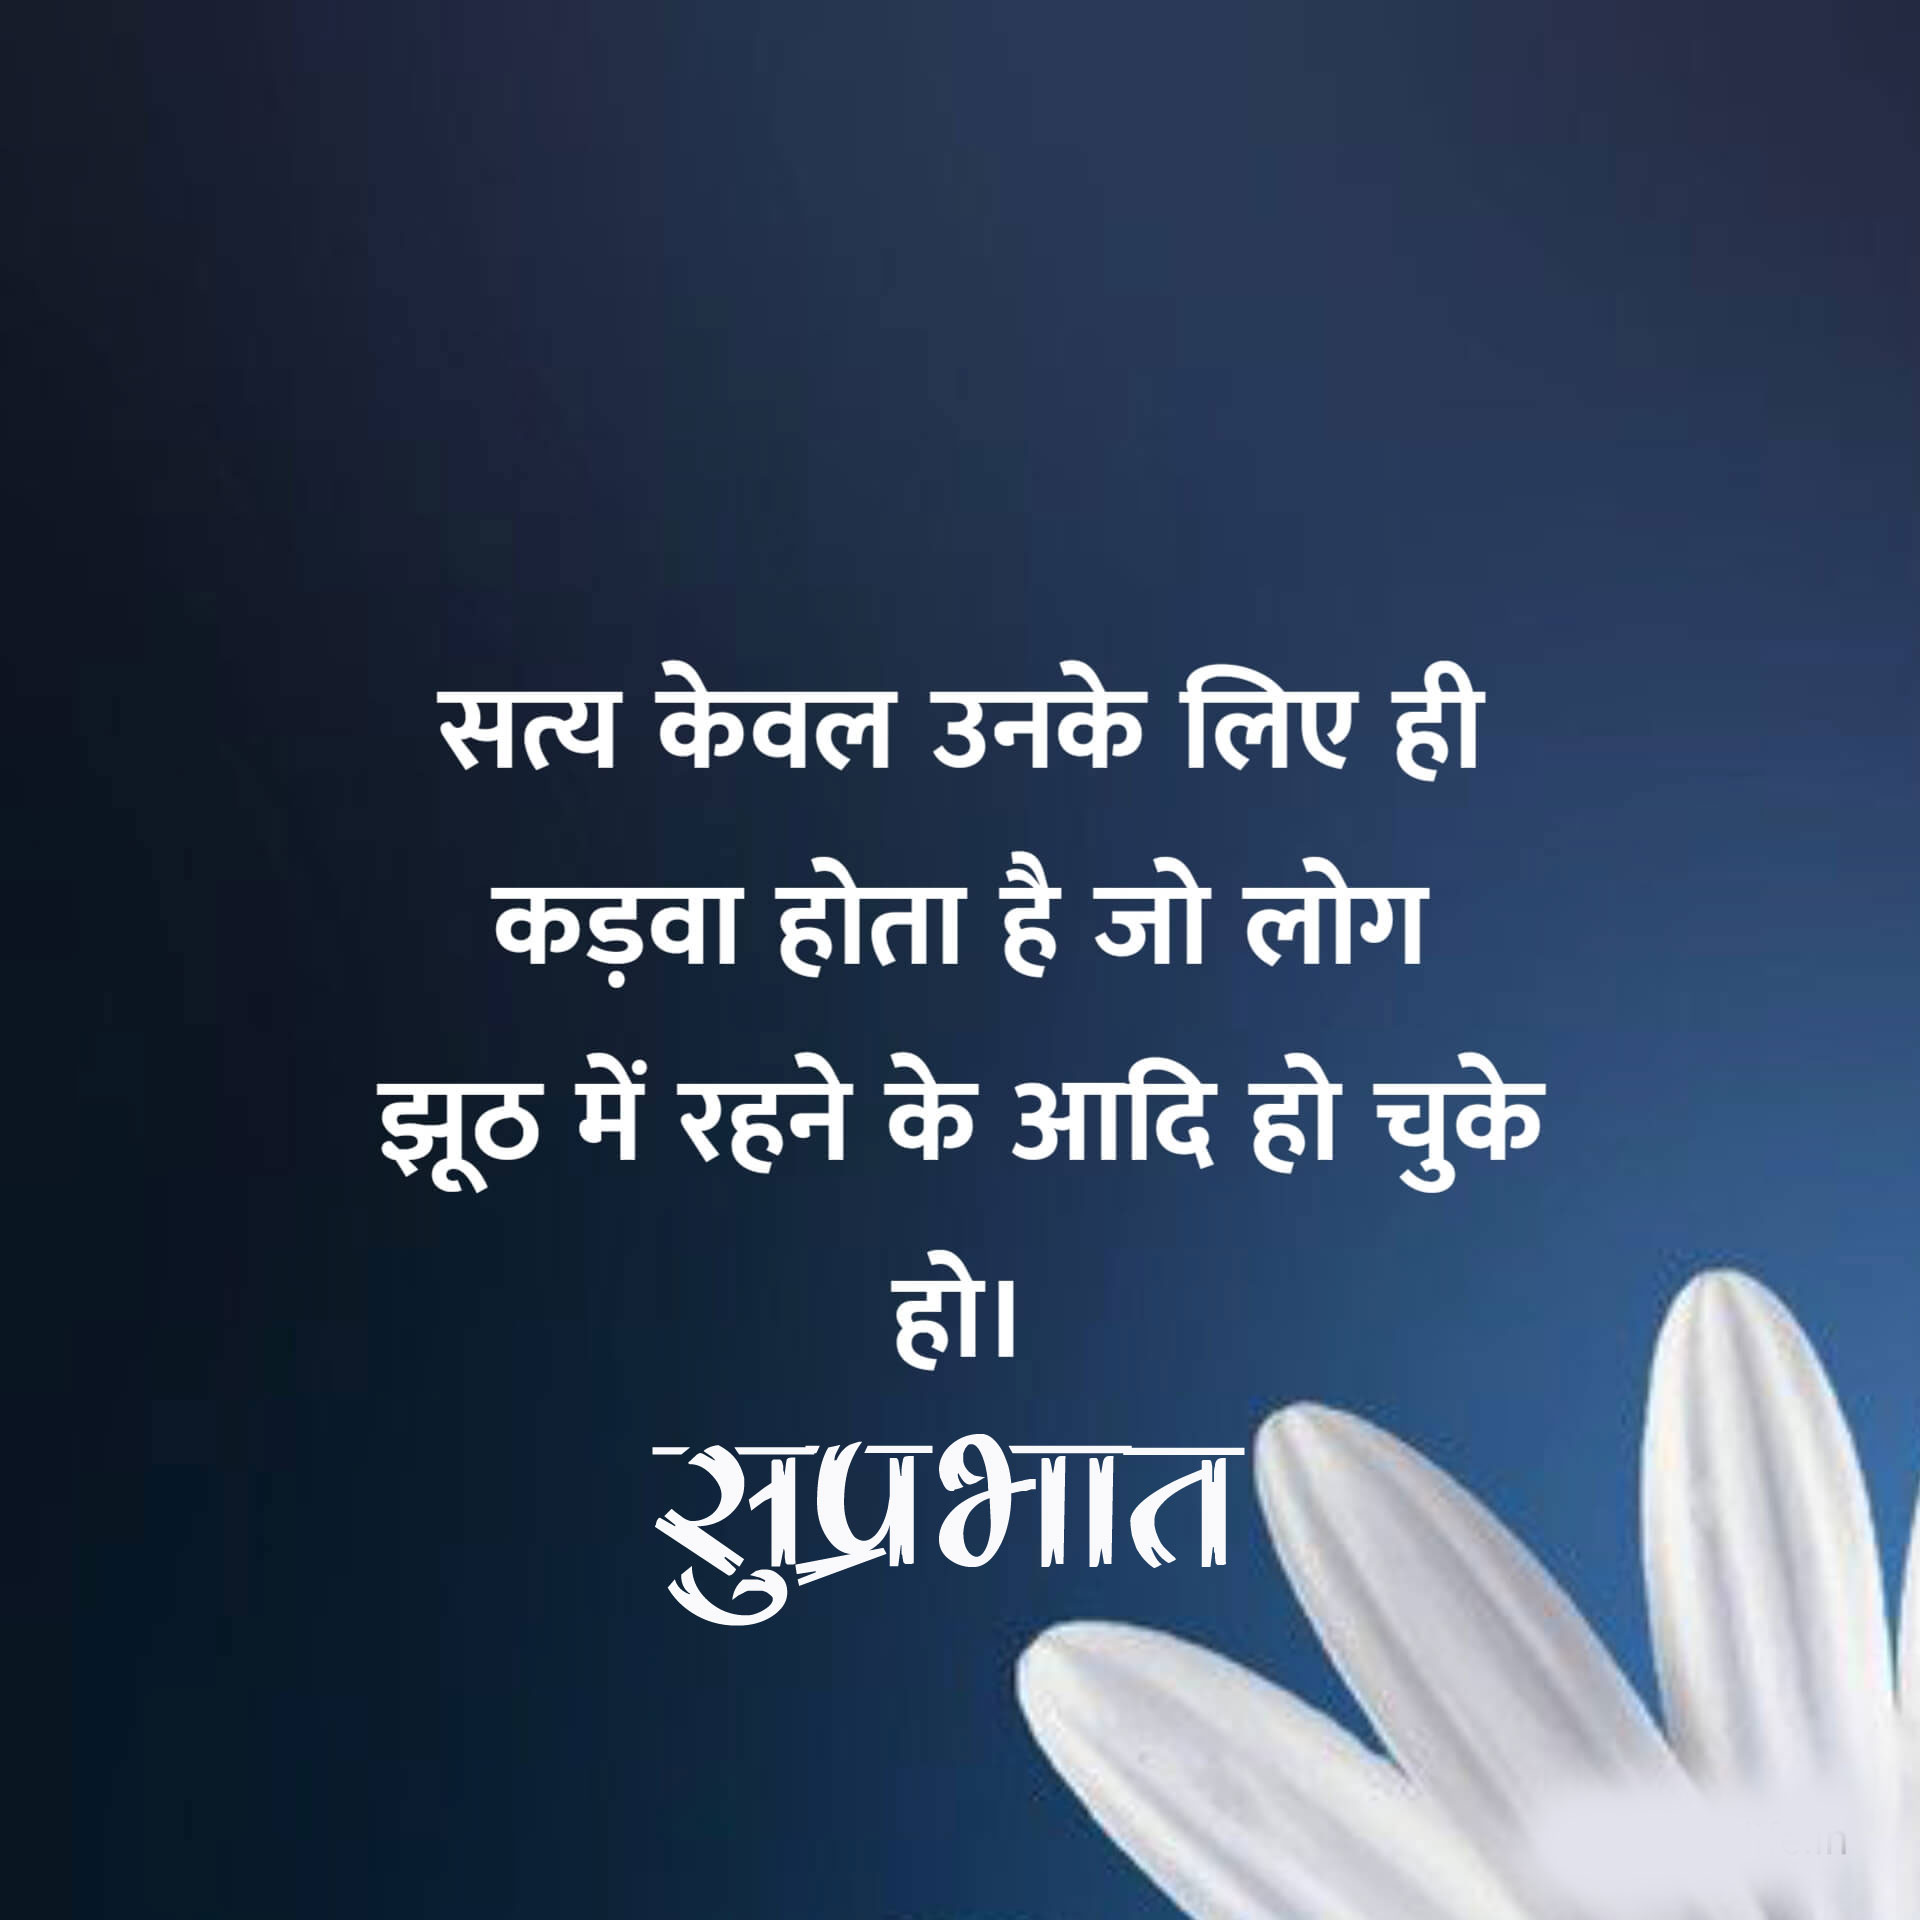 Latest Suprabhat Images for profile